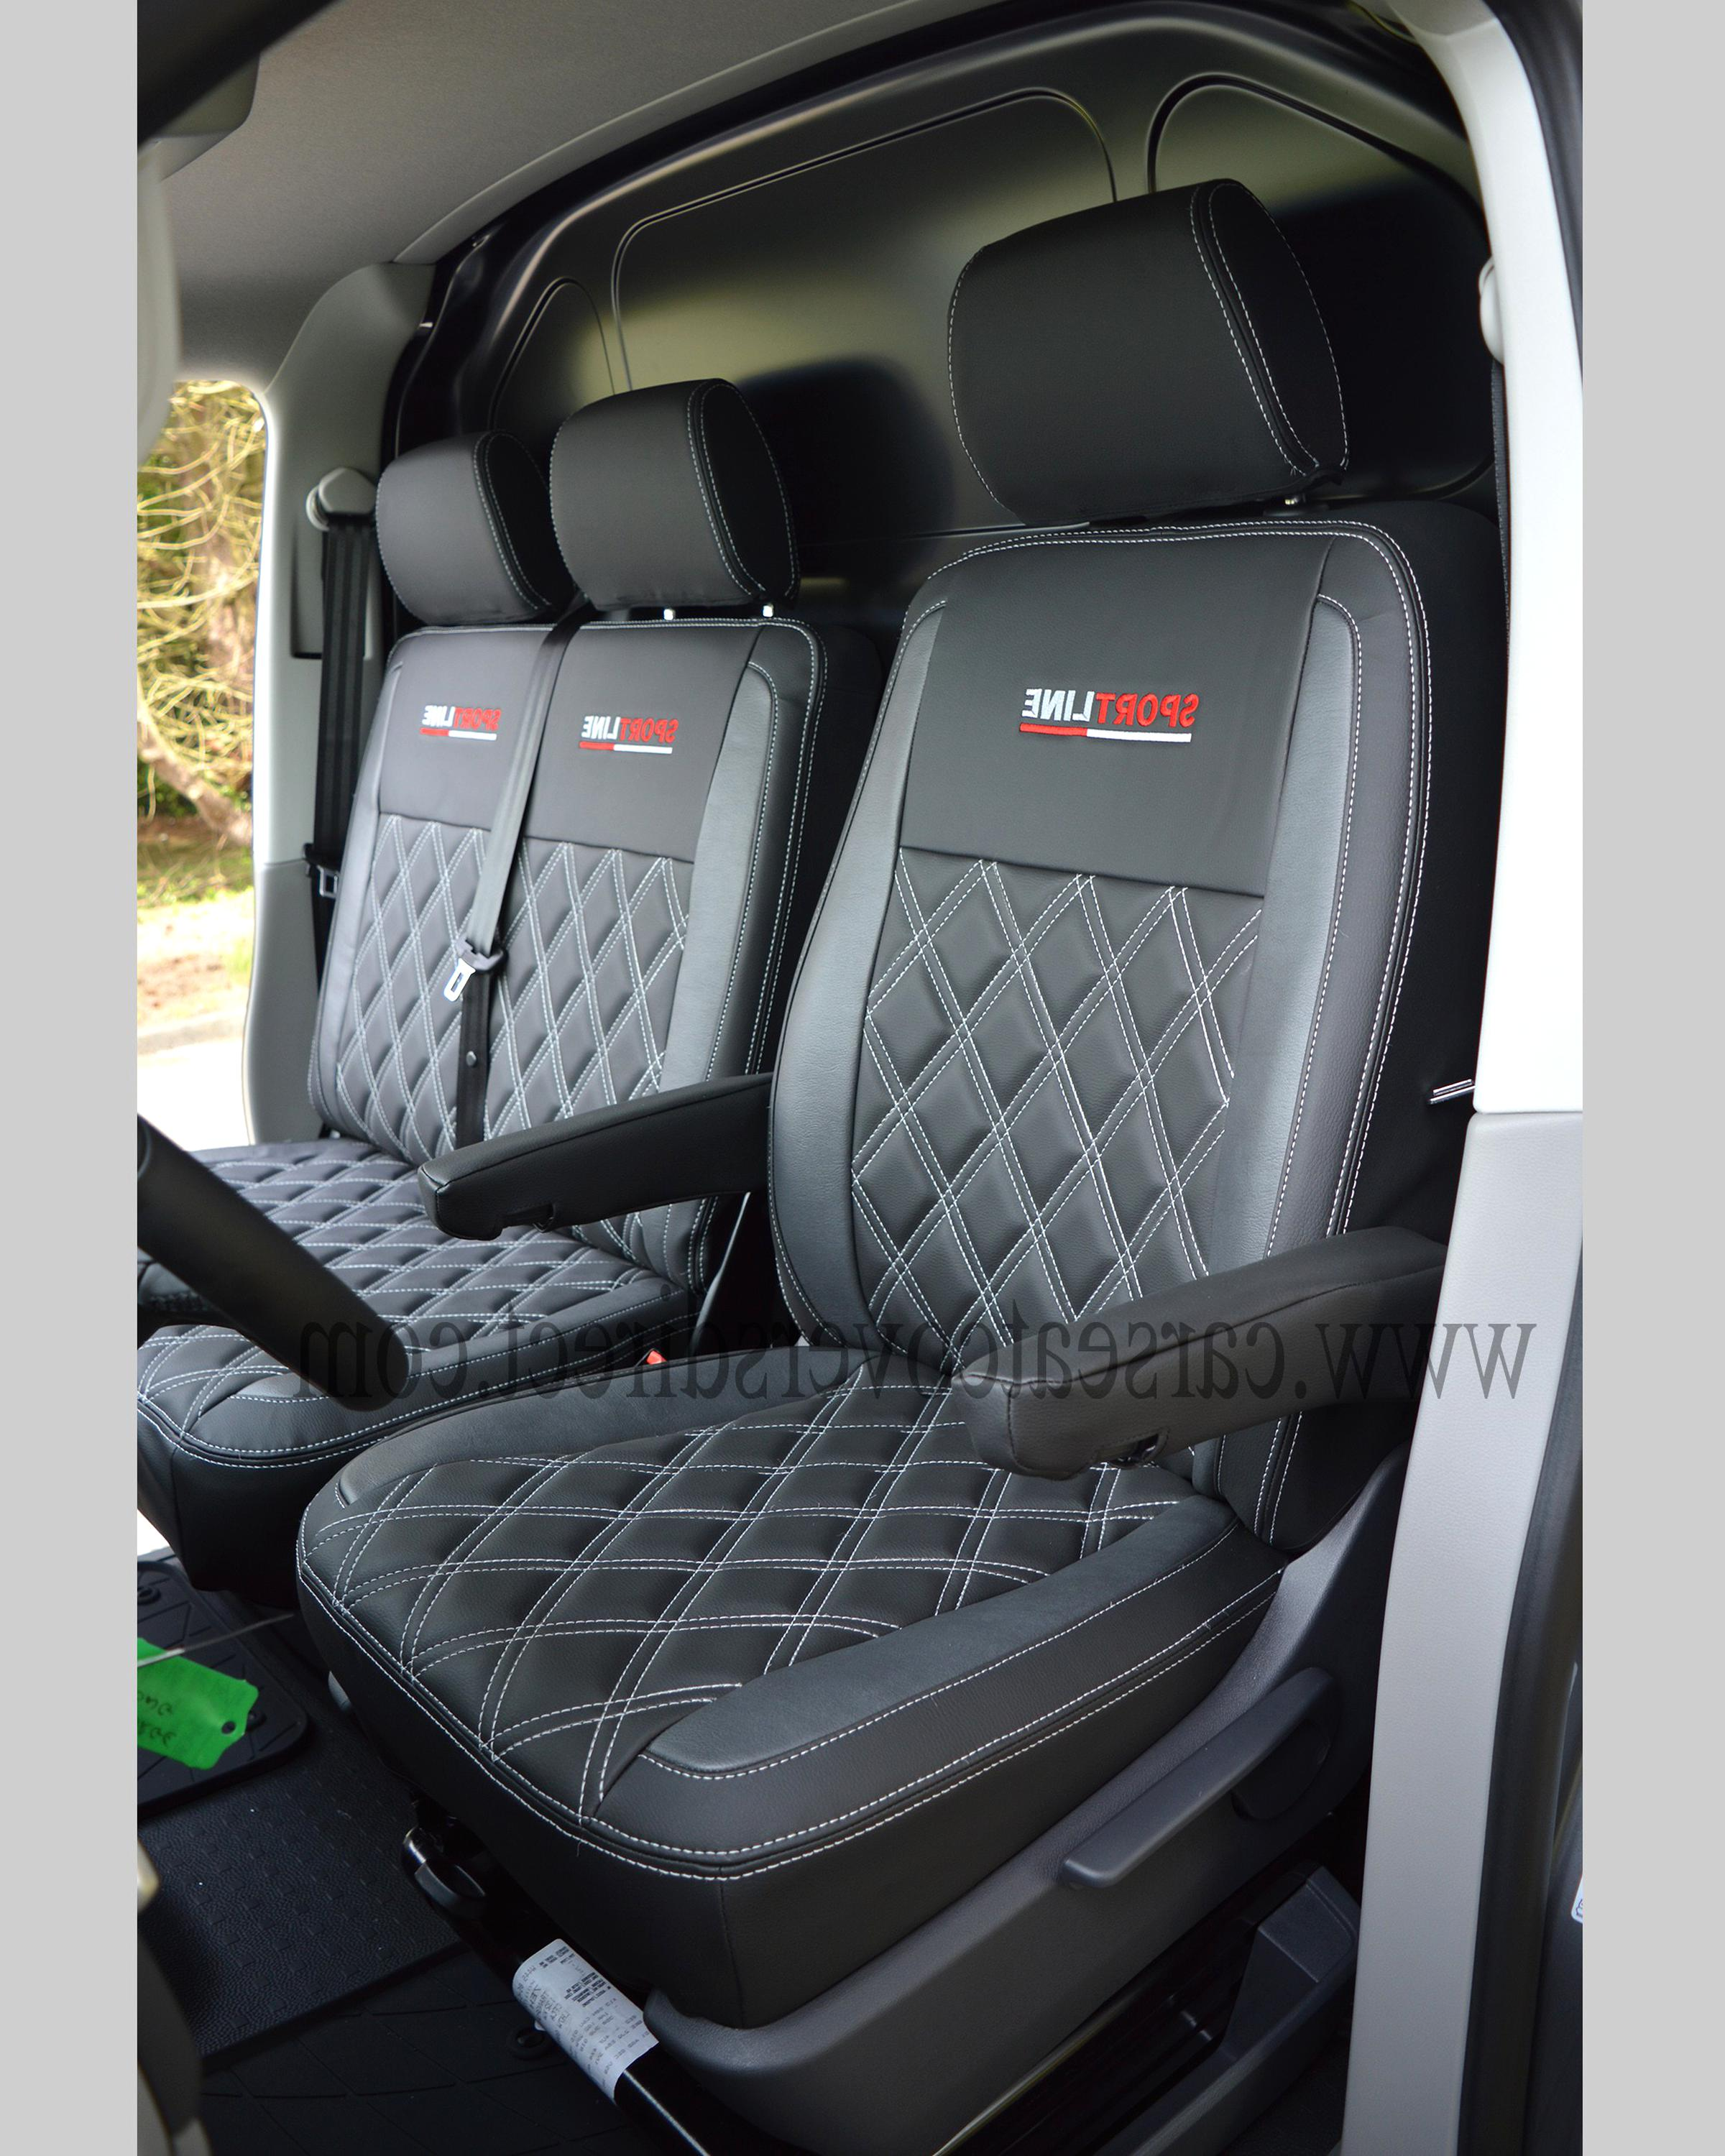 vw transporter t5 seats for sale